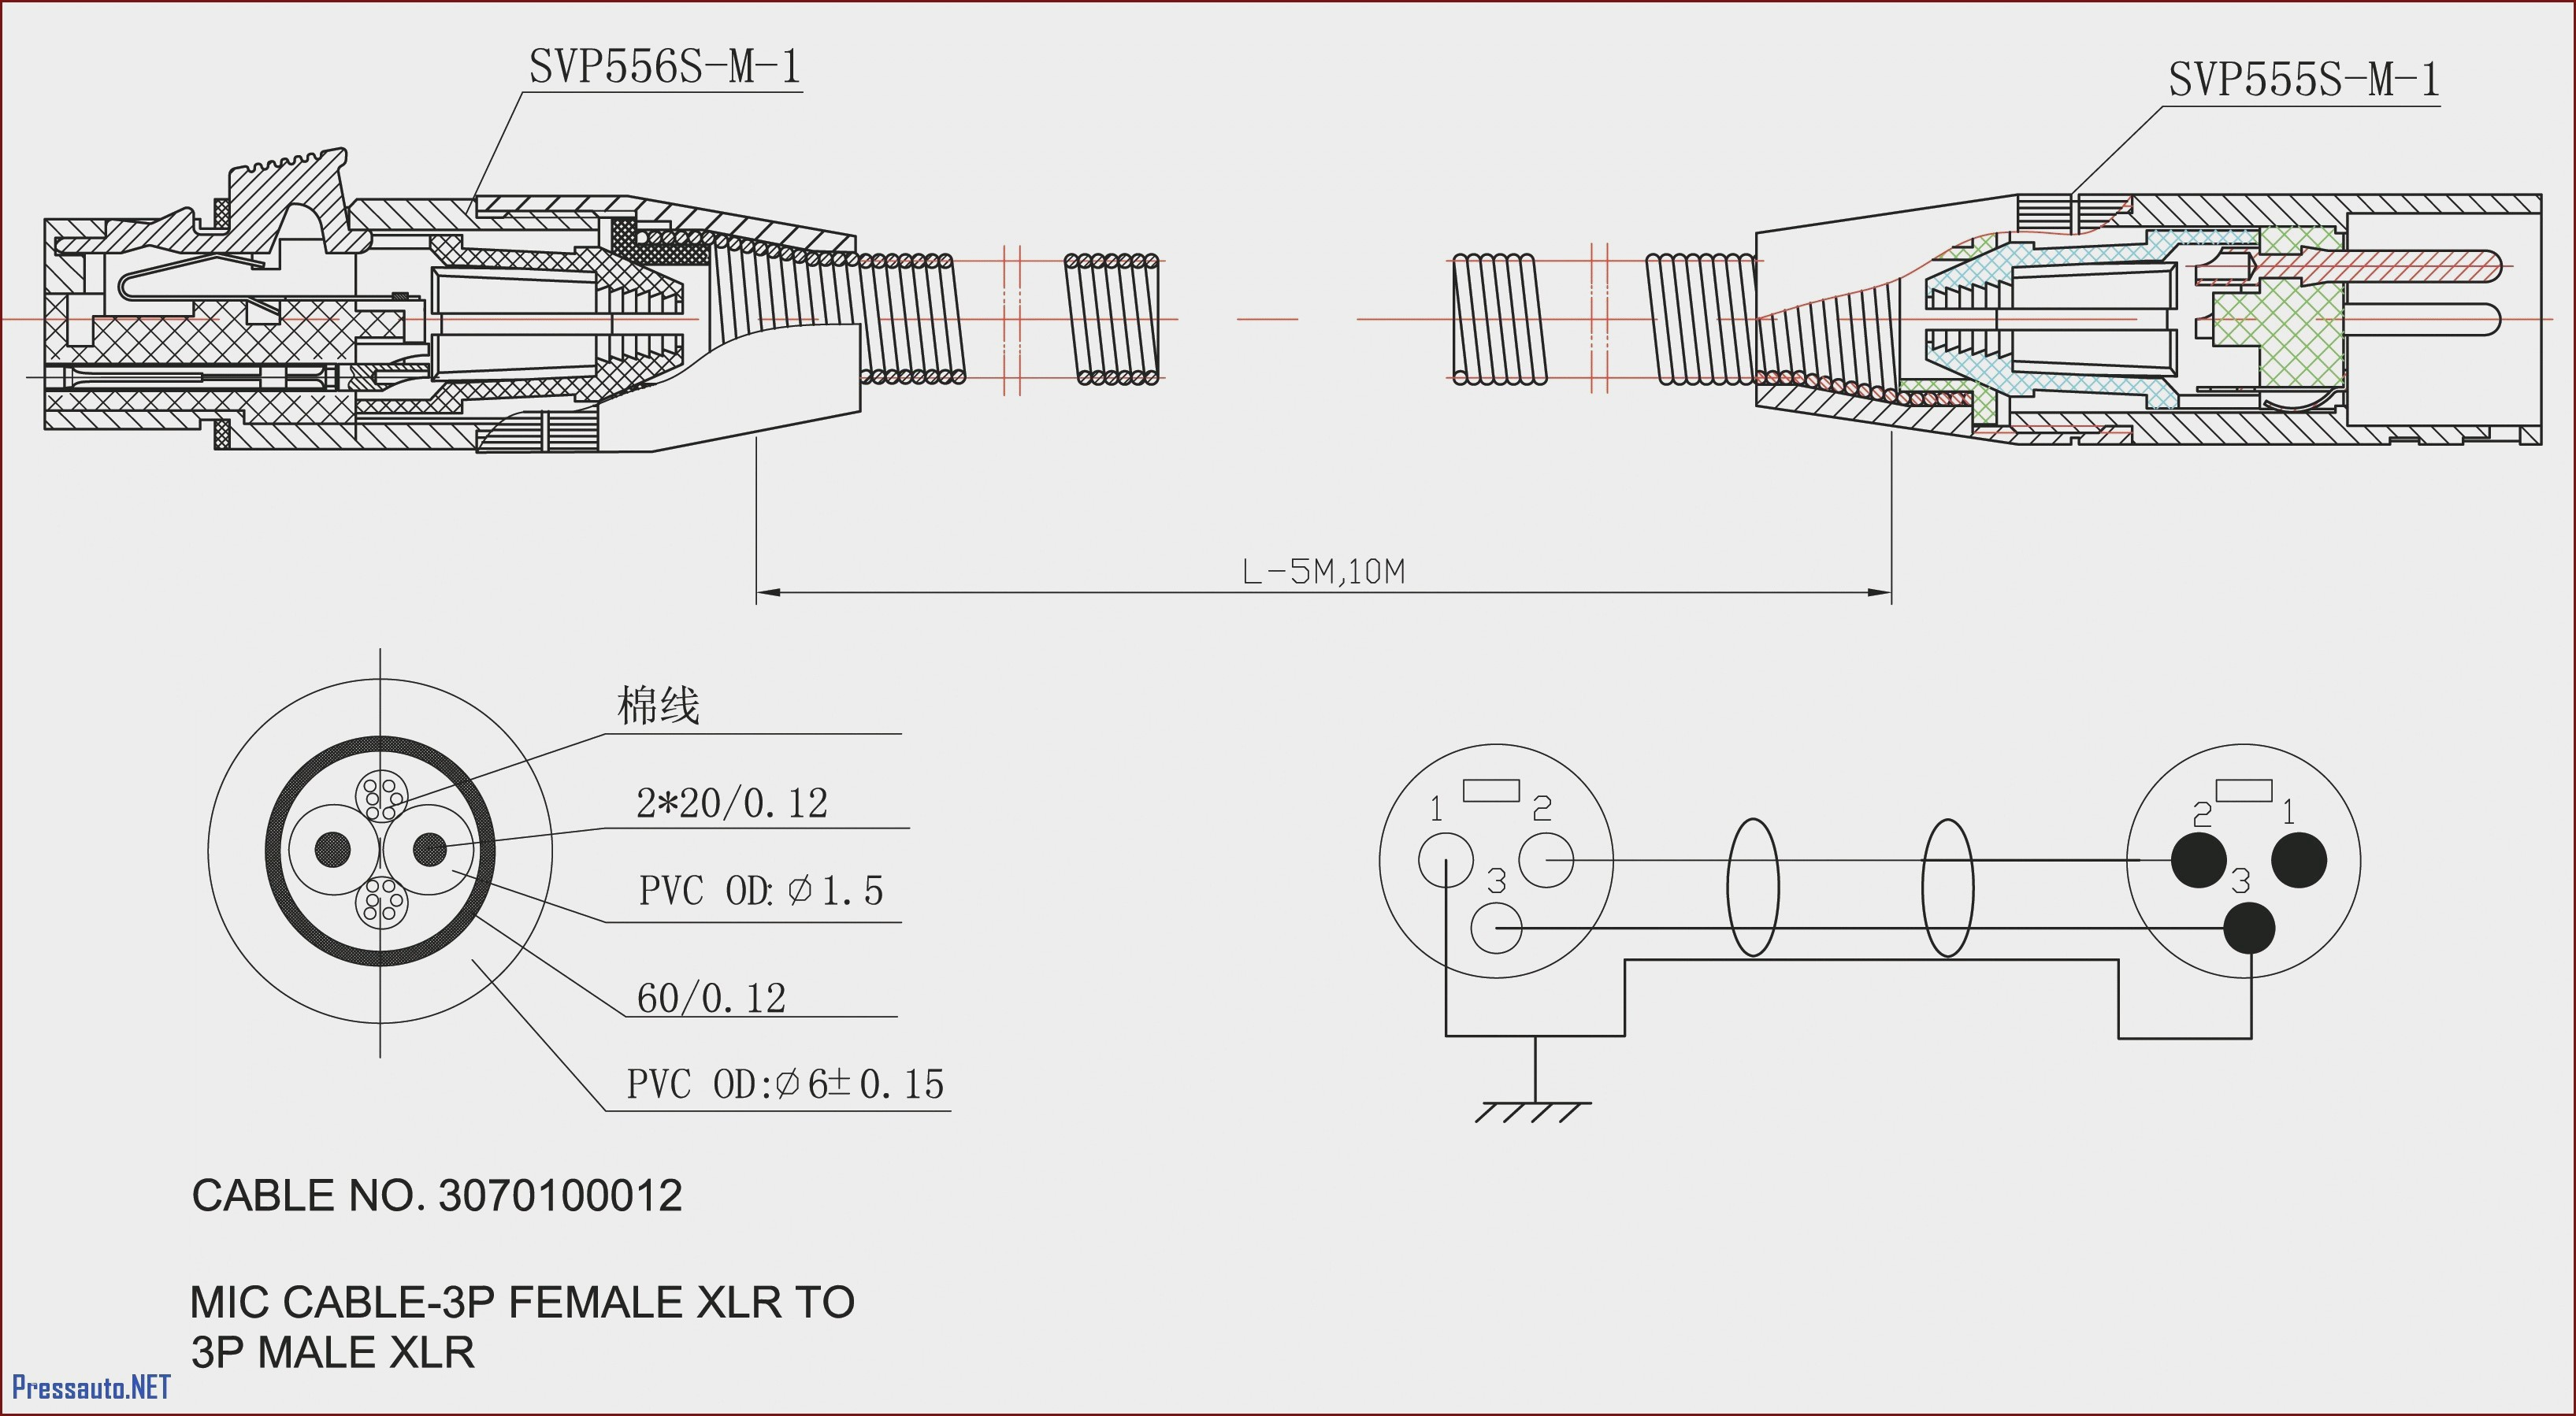 Ethernet Cable Wiring Diagram Cat6 Ethernet Cable Wiring Diagram at Manuals Library Of Ethernet Cable Wiring Diagram